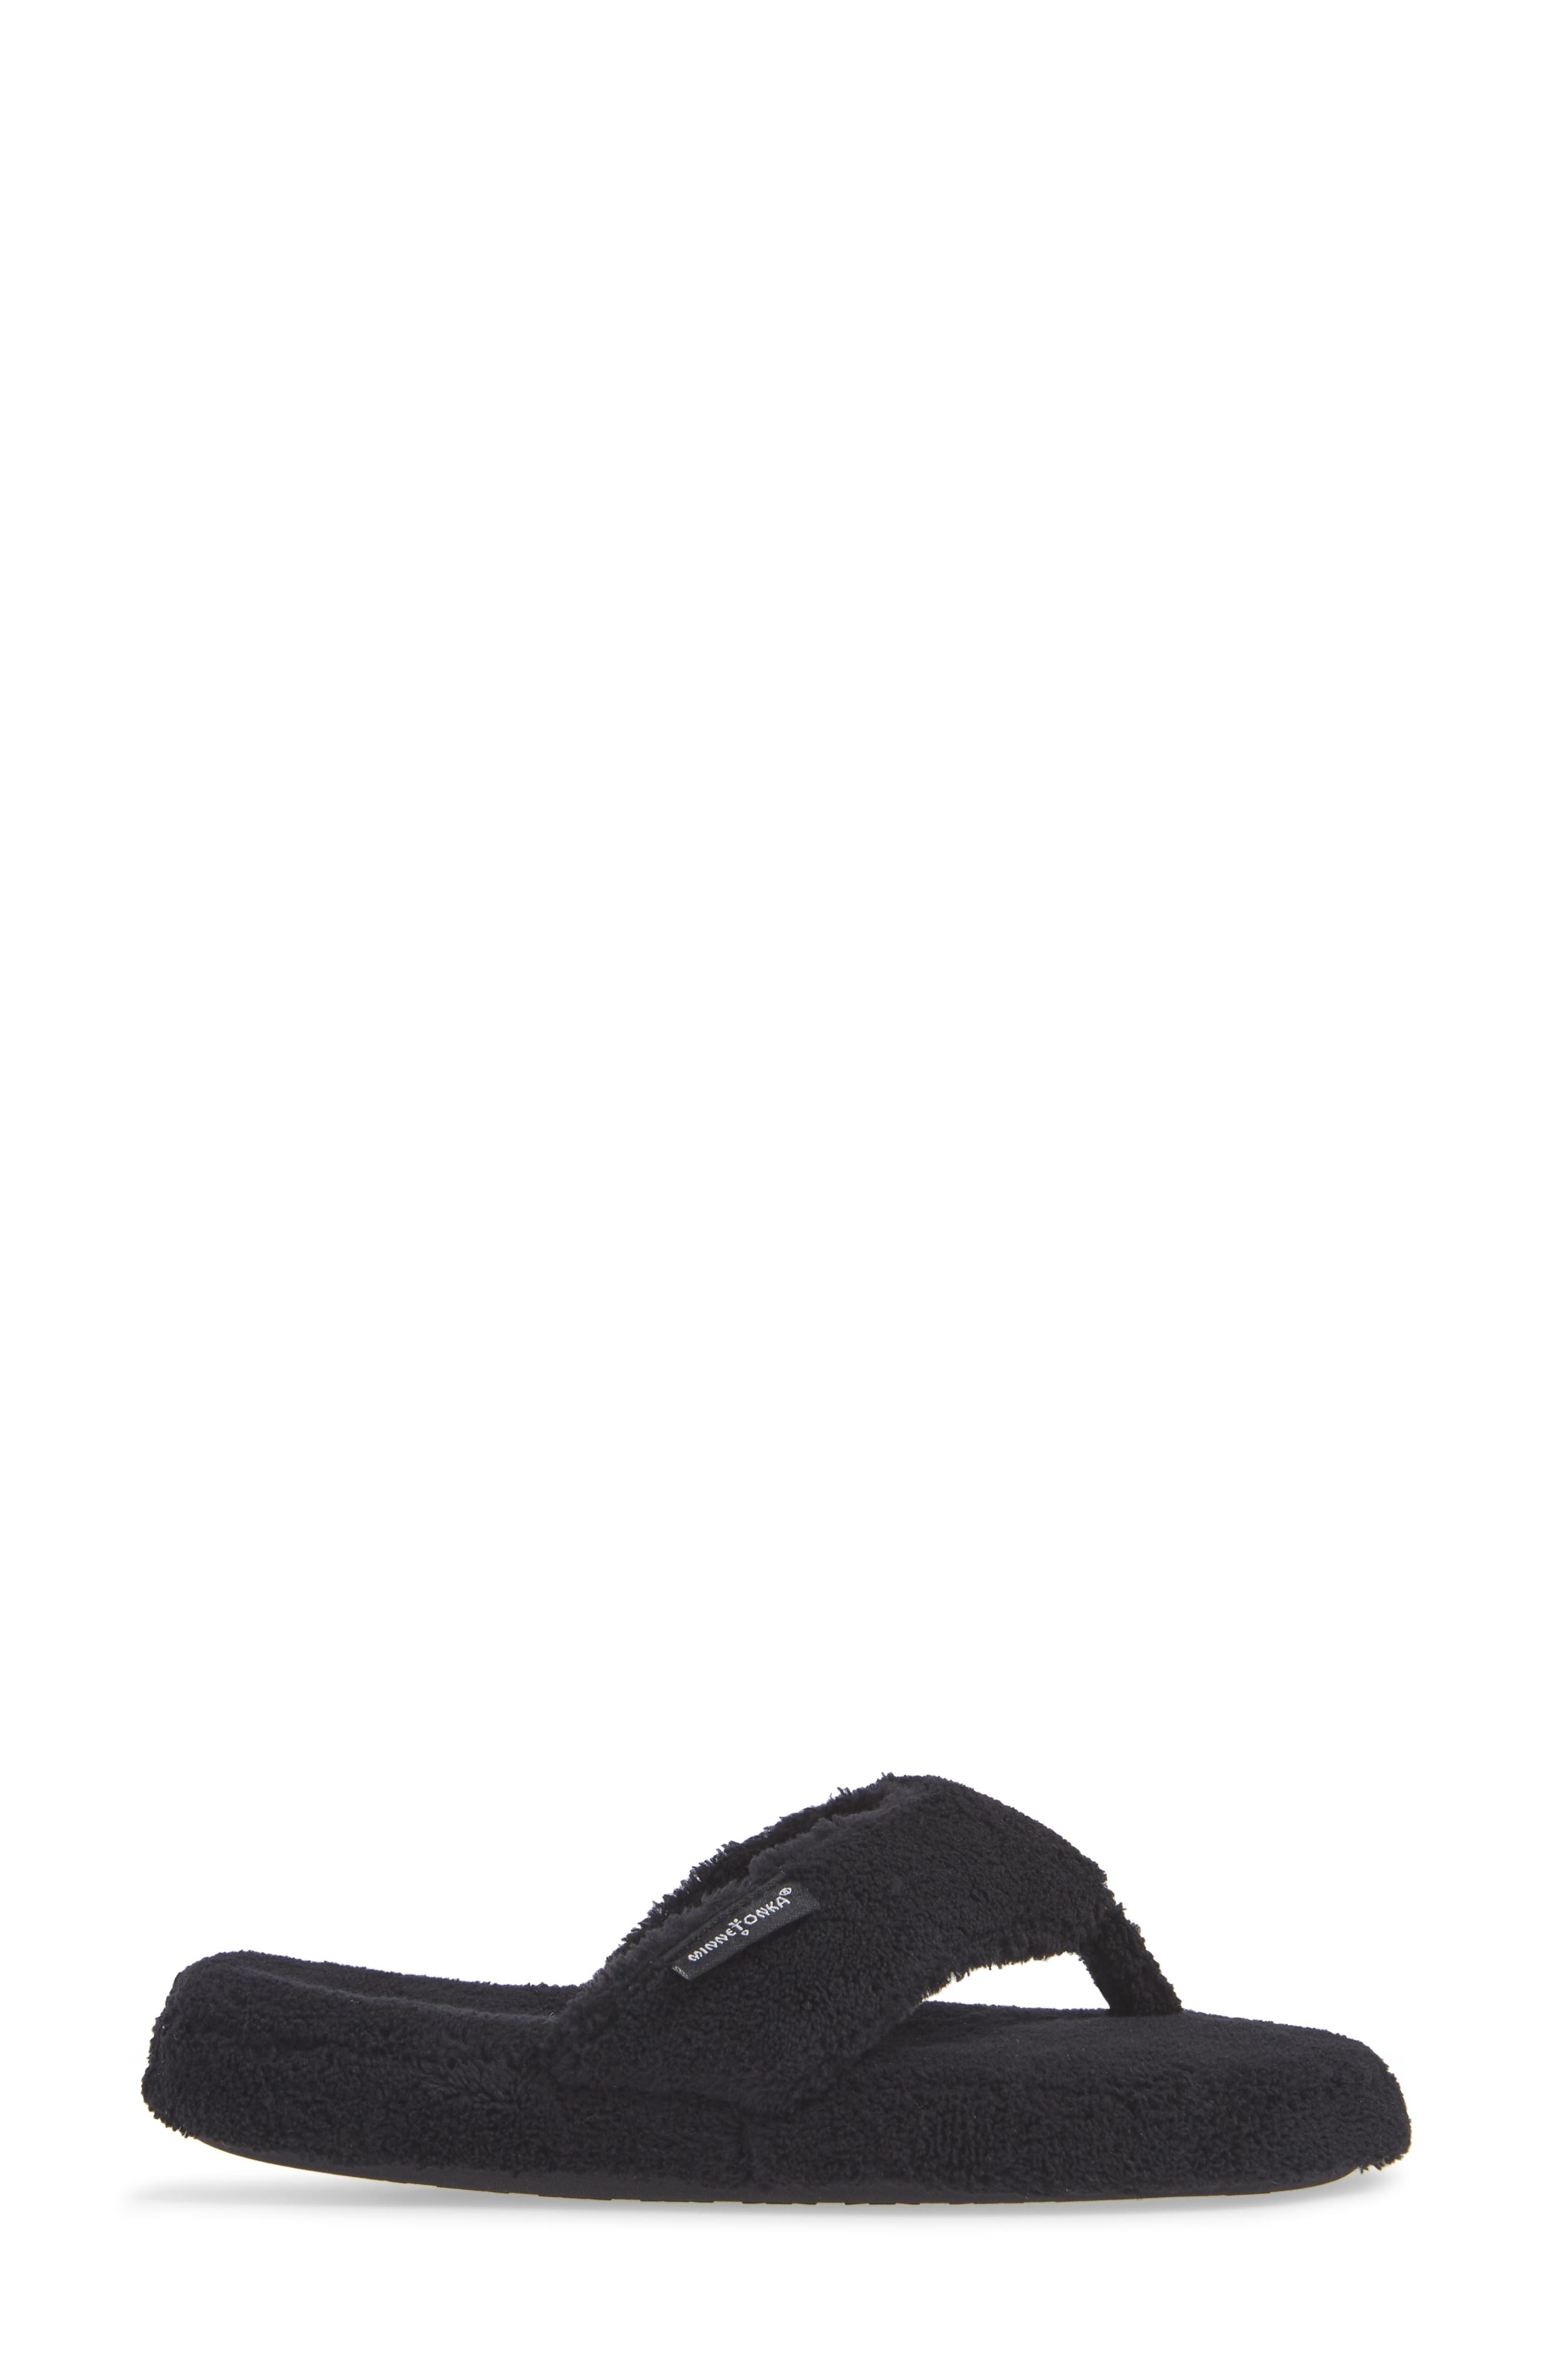 MINNETONKA, Olivia Spa Flip Flop, Alternate thumbnail 3, color, BLACK FABRIC